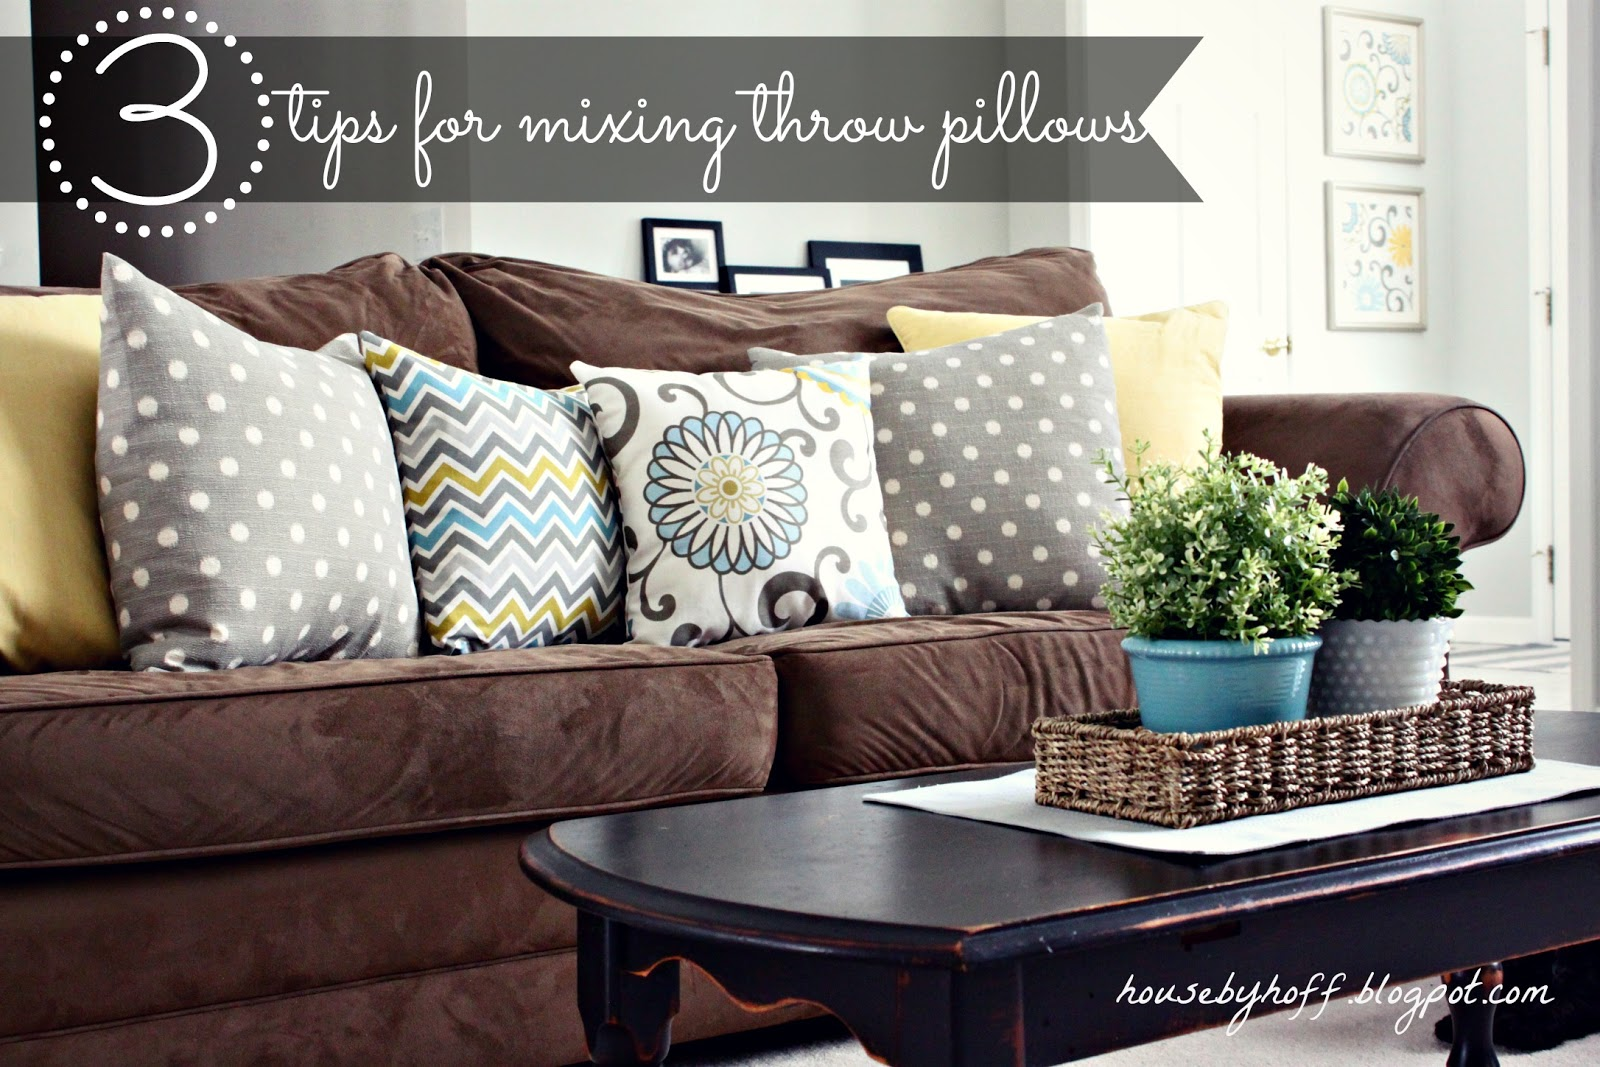 Mixing Throw Pillows - House by Hoff